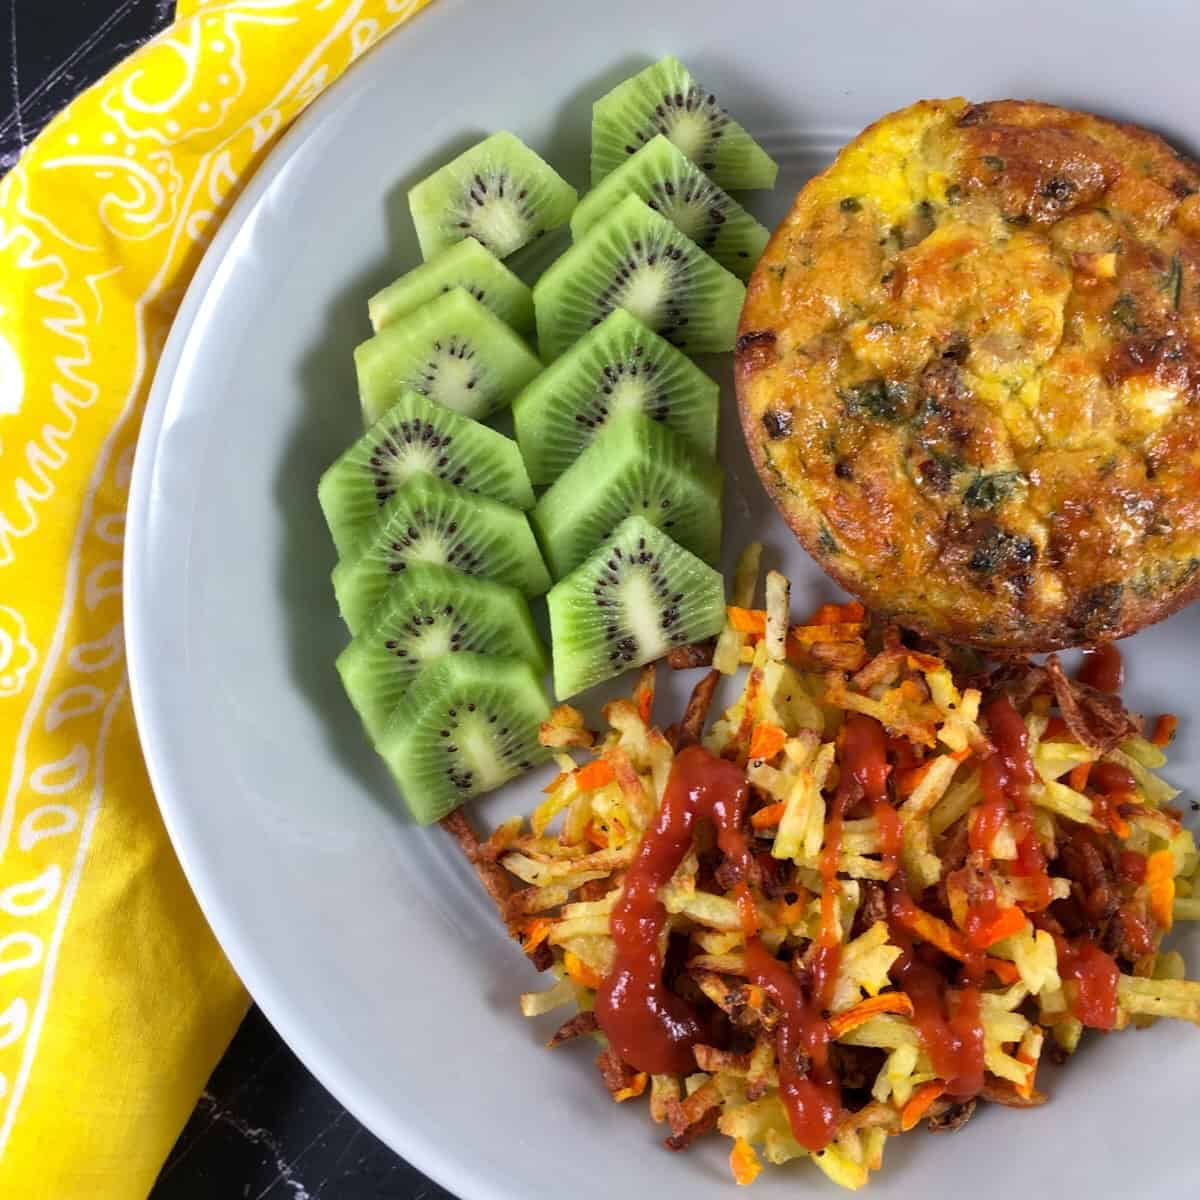 cooked hash browns kiwi and frittata